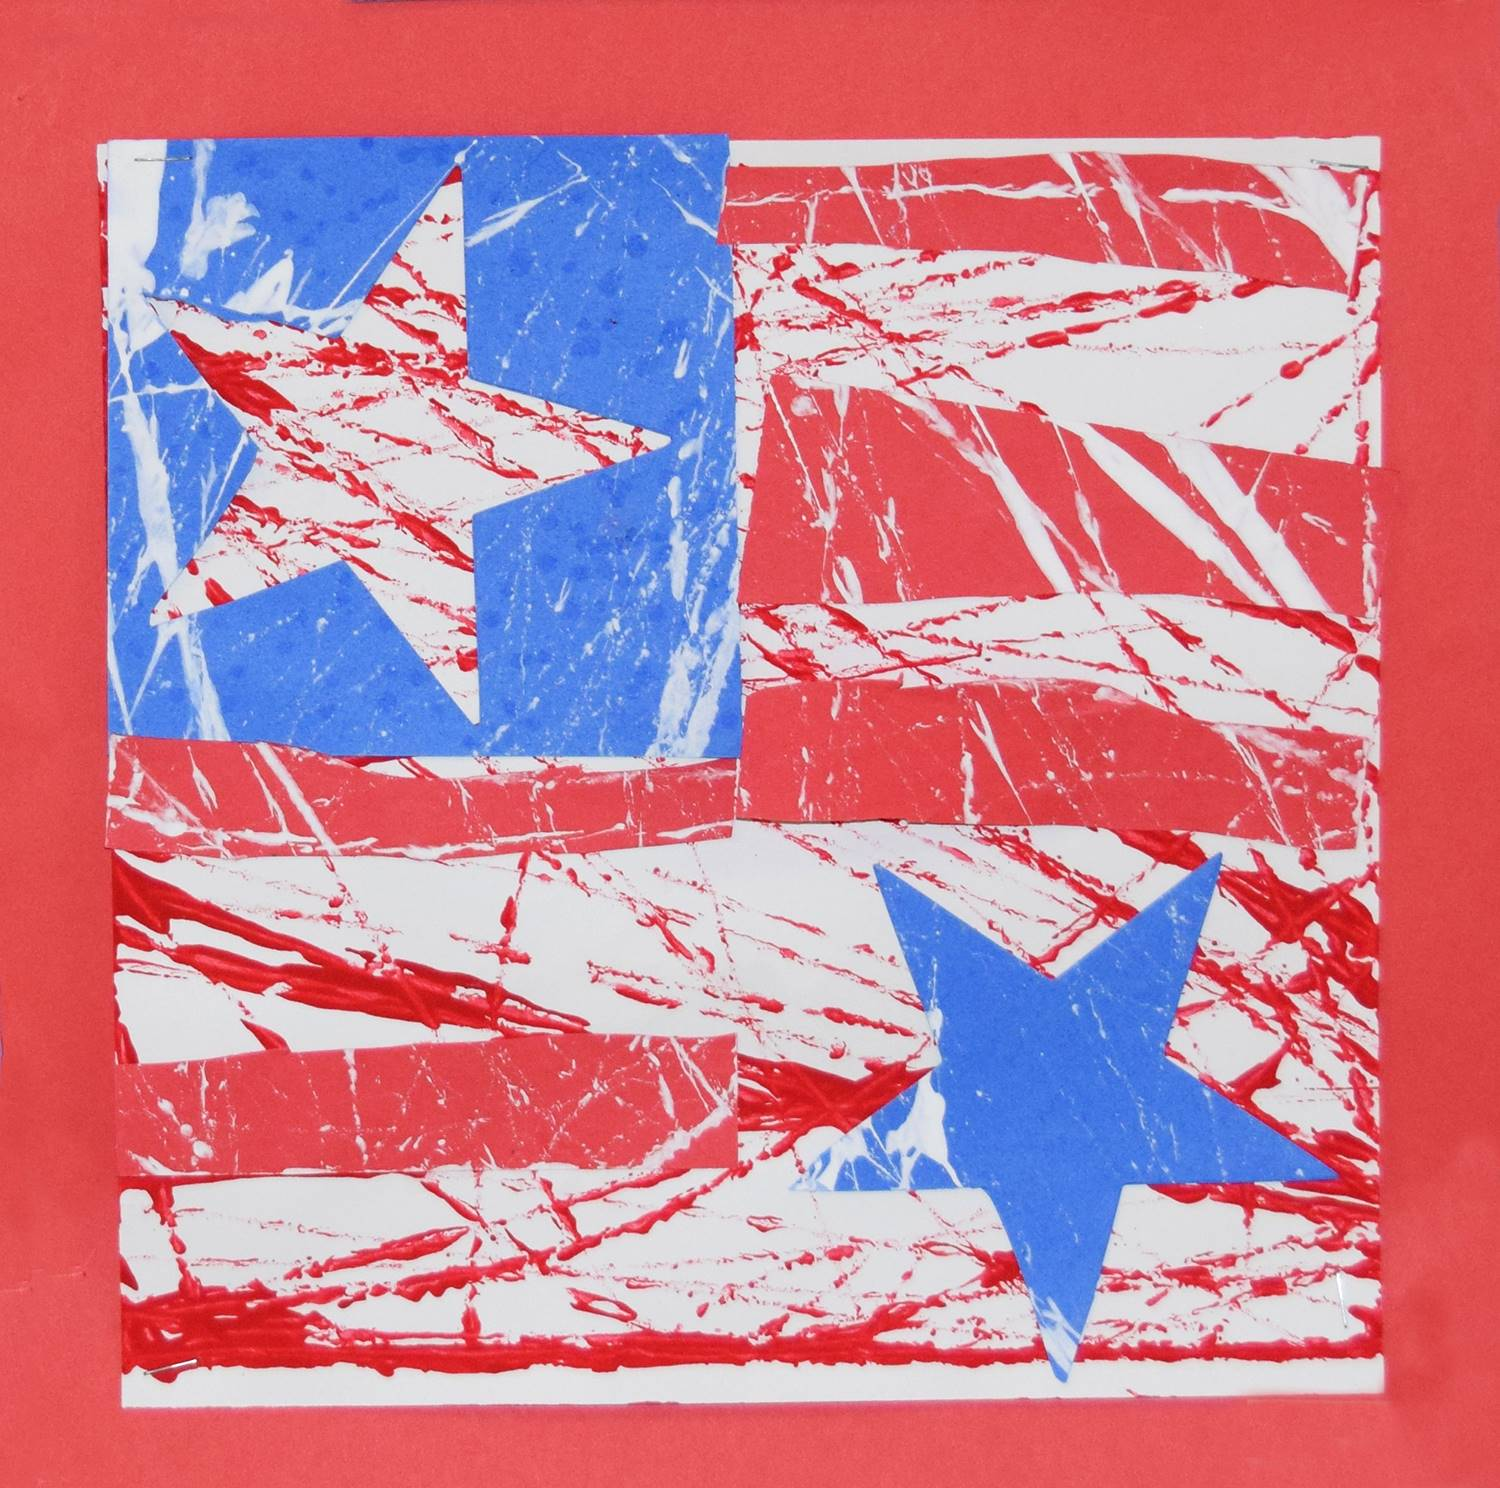 A red, white and blue montage of paint-splattered stars by Andrew, a Clayton Avenue Elementary stude